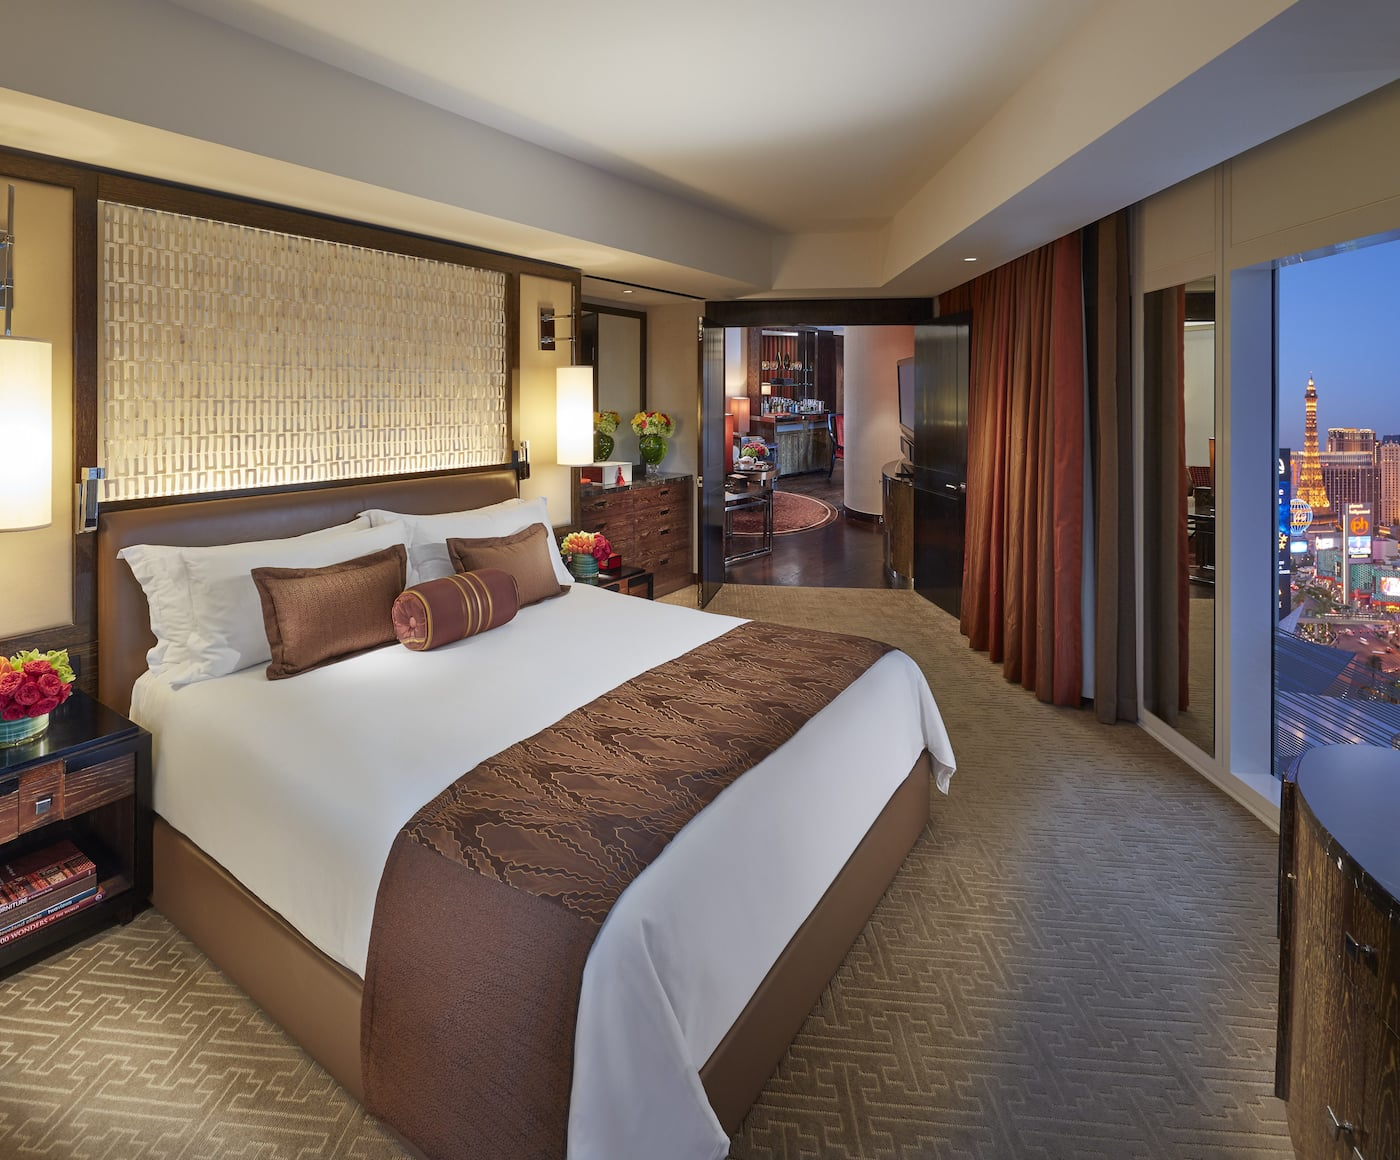 Luxury Hotels Las Vegas The Strip Mandarin Oriental Las Vegas Nv